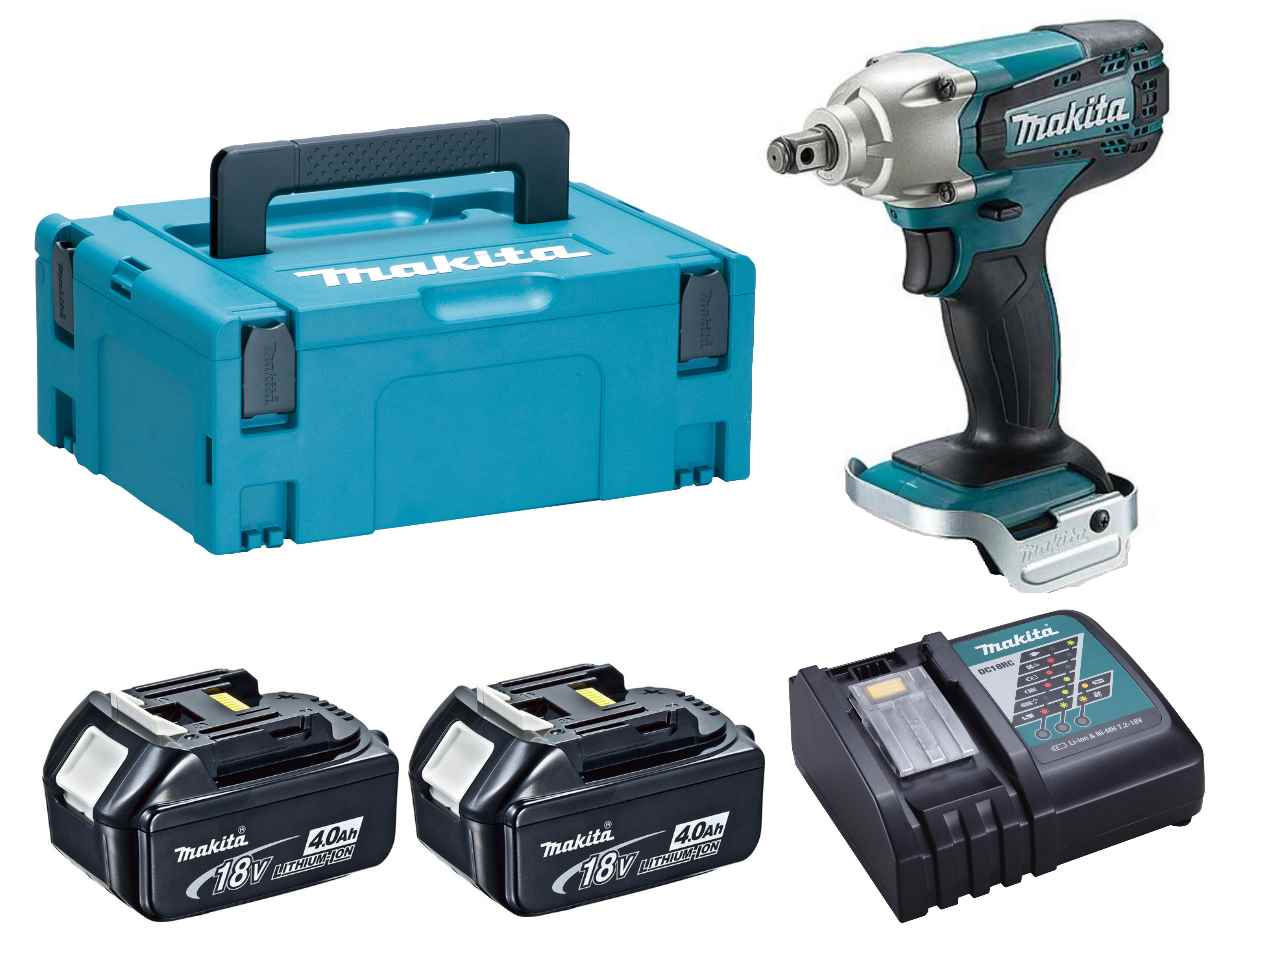 makita dtw190rmj 18v 2x4 0ah li ion lxt impact wrench kit. Black Bedroom Furniture Sets. Home Design Ideas